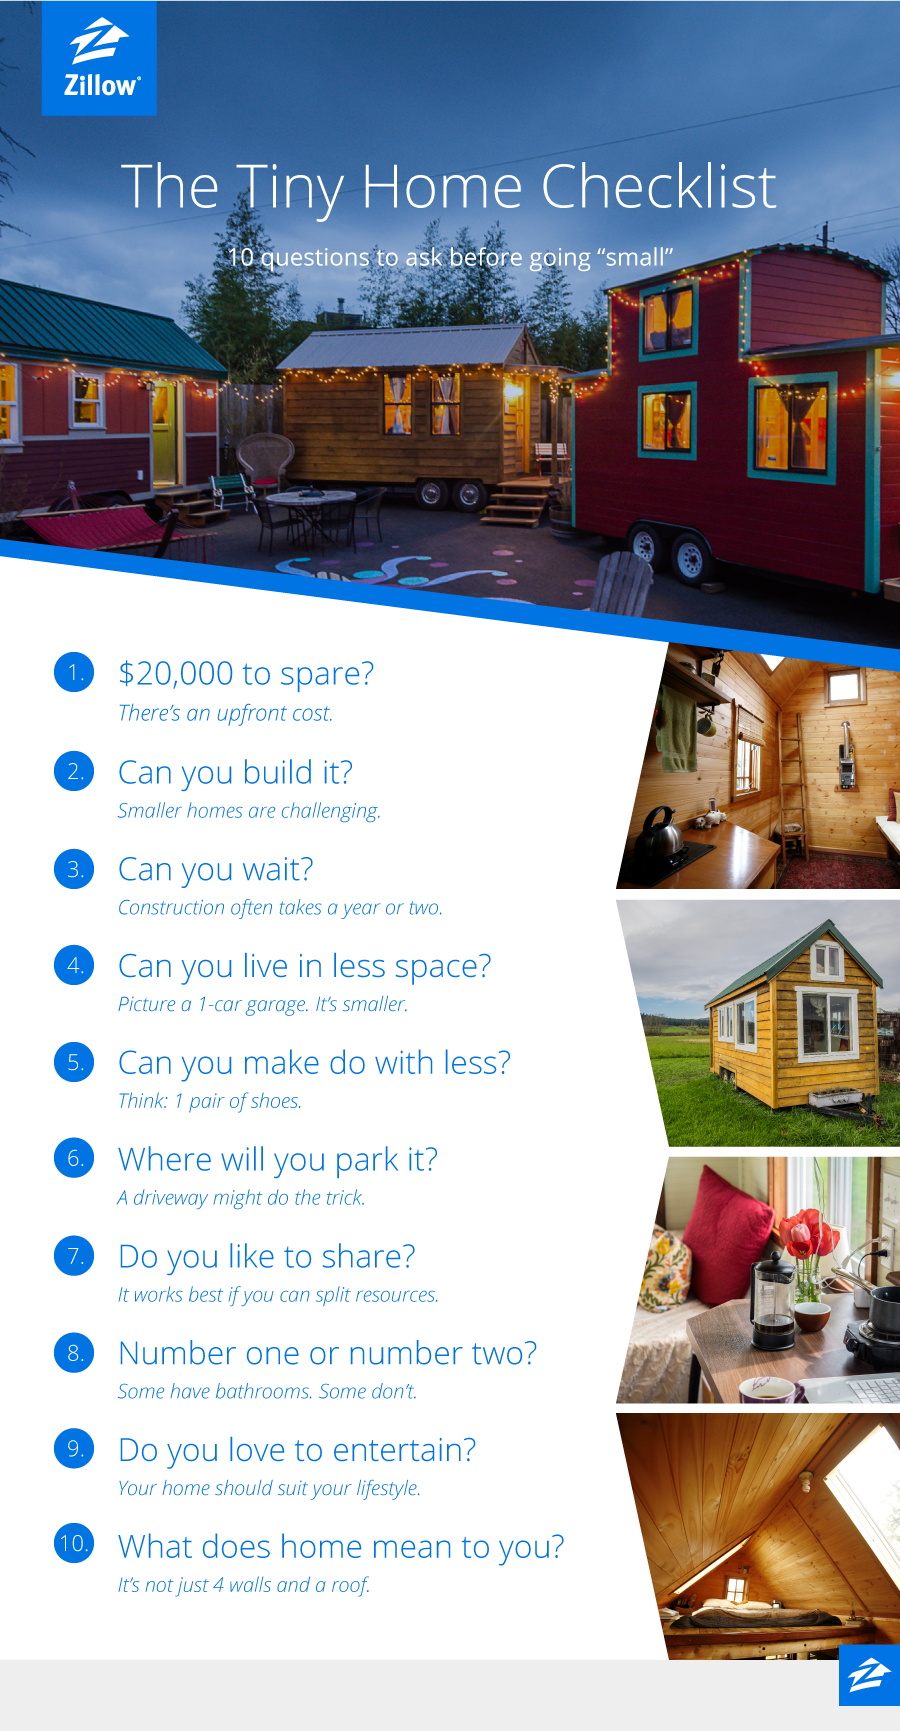 10 Questions to Ask Before Choosing a Tiny Home | Zillow Blog